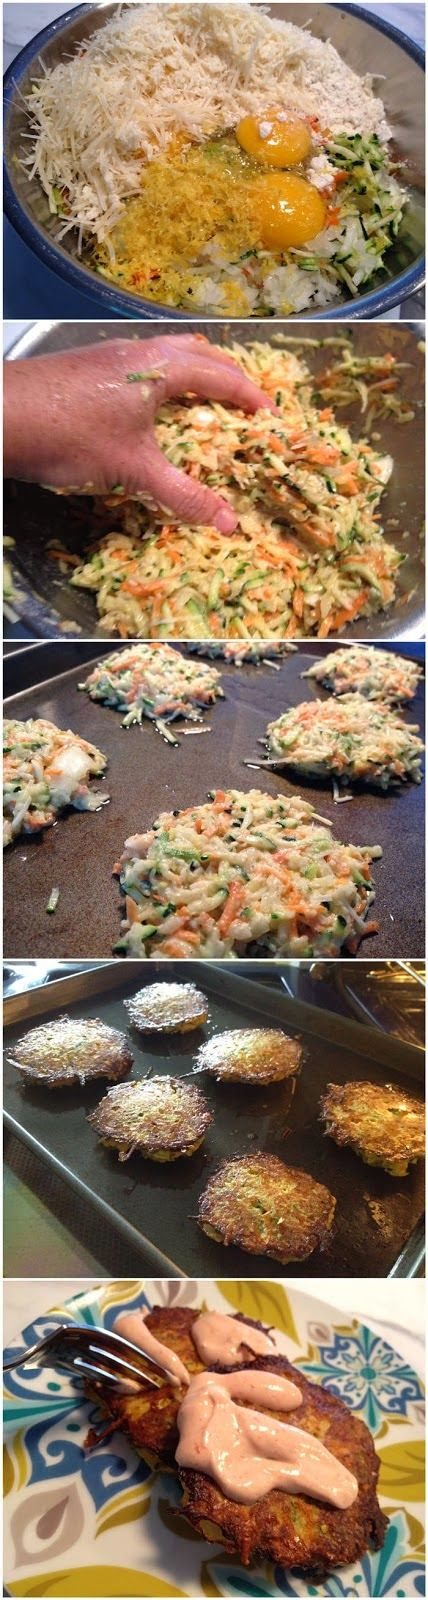 Simple Baked Zucchini-Carrot Fritters